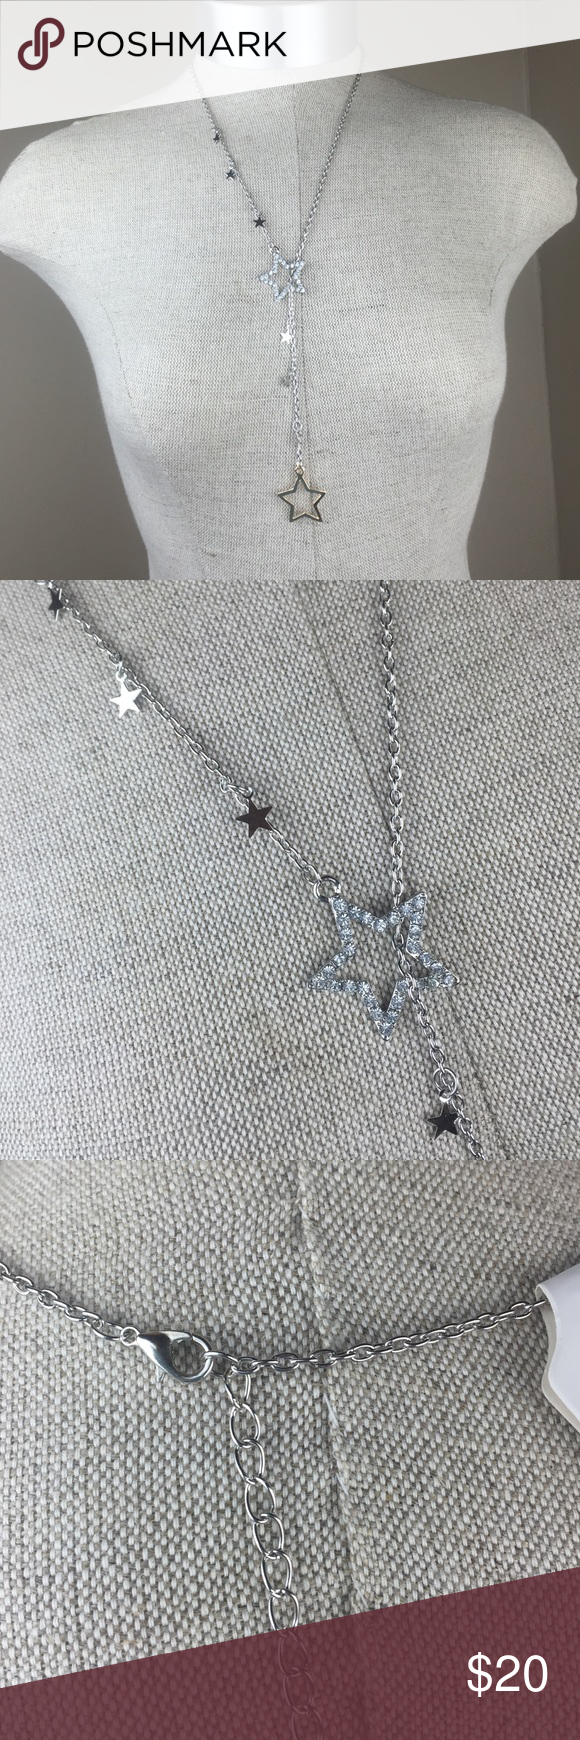 New silver gold dangle star necklace Brand new with tags. Pet and smoke free home. Silver and gold color, dangle star necklace. Clasp closure. Bundle for discounts. Absolutely NO trades. Jewelry Necklaces